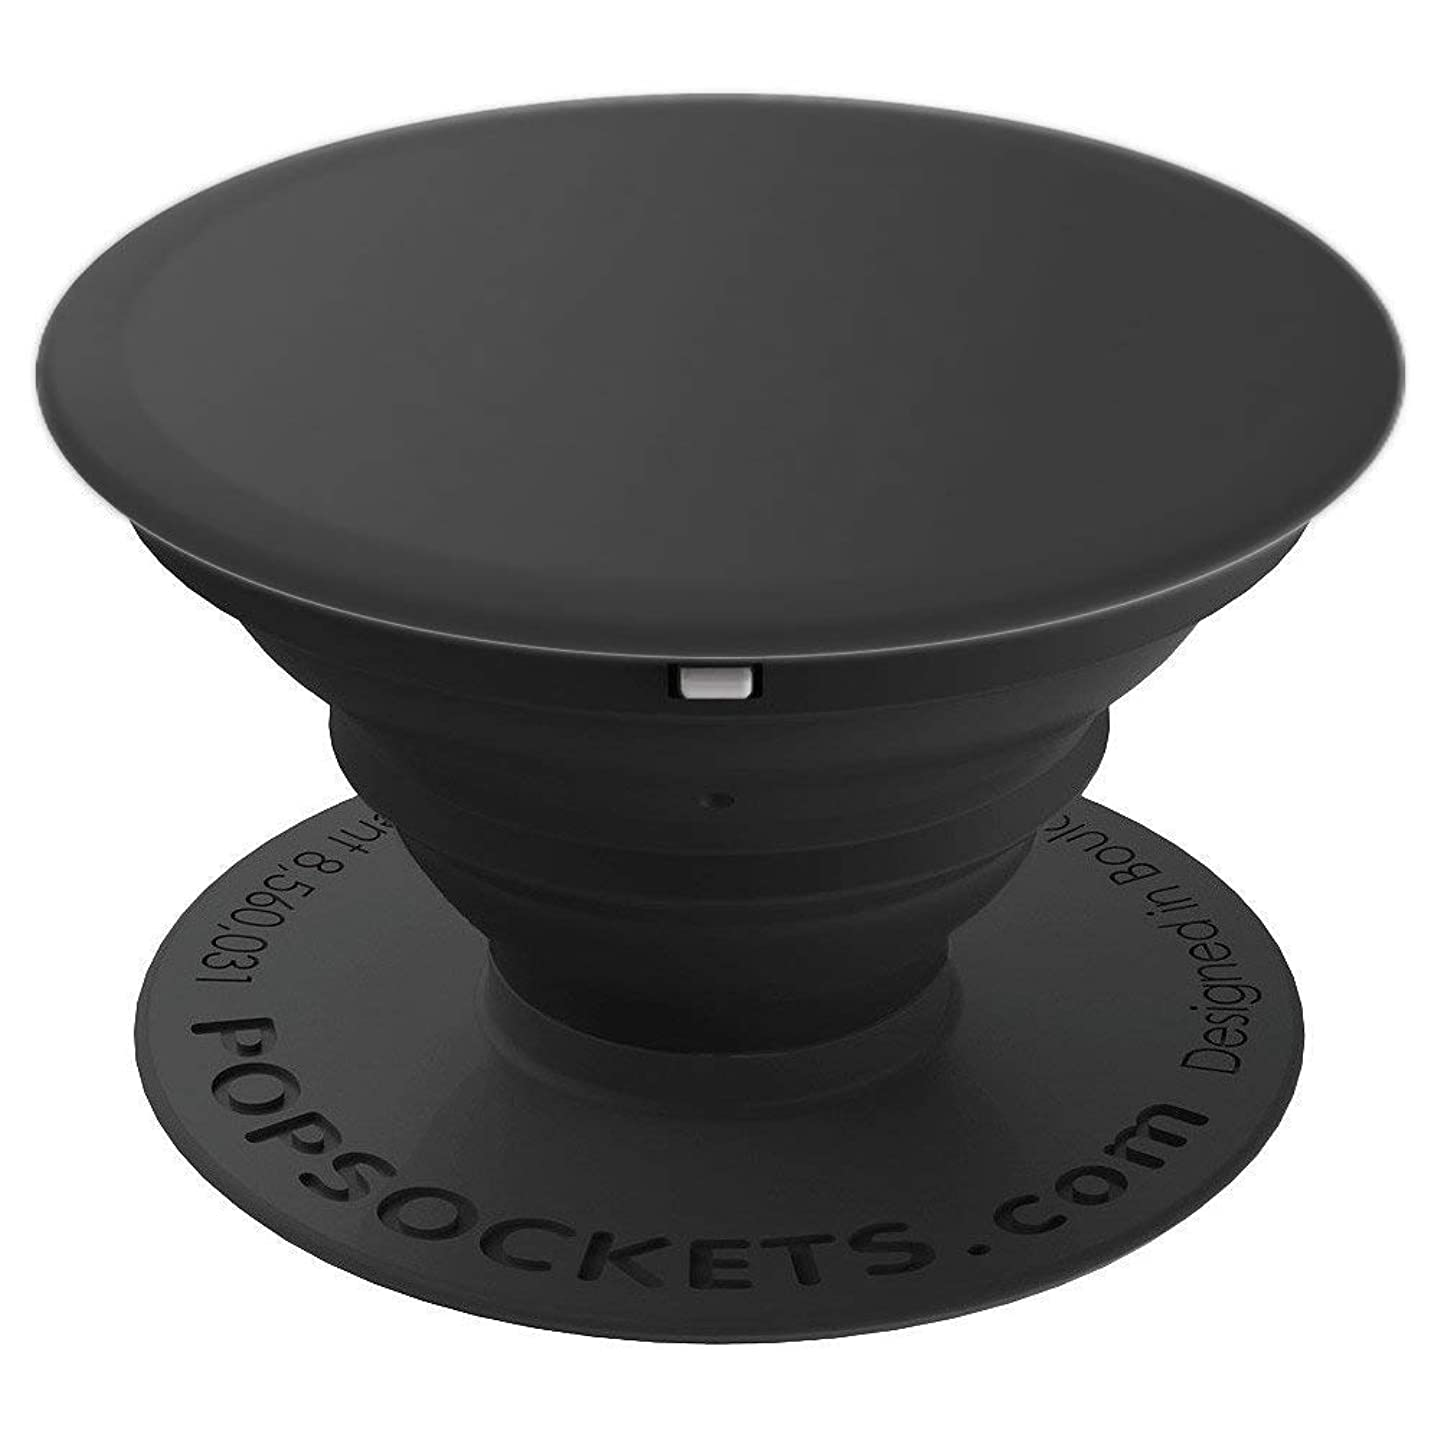 T Black Phone Popper Grip - Solid Color - PopSockets Grip and Stand for Phones and Tablets